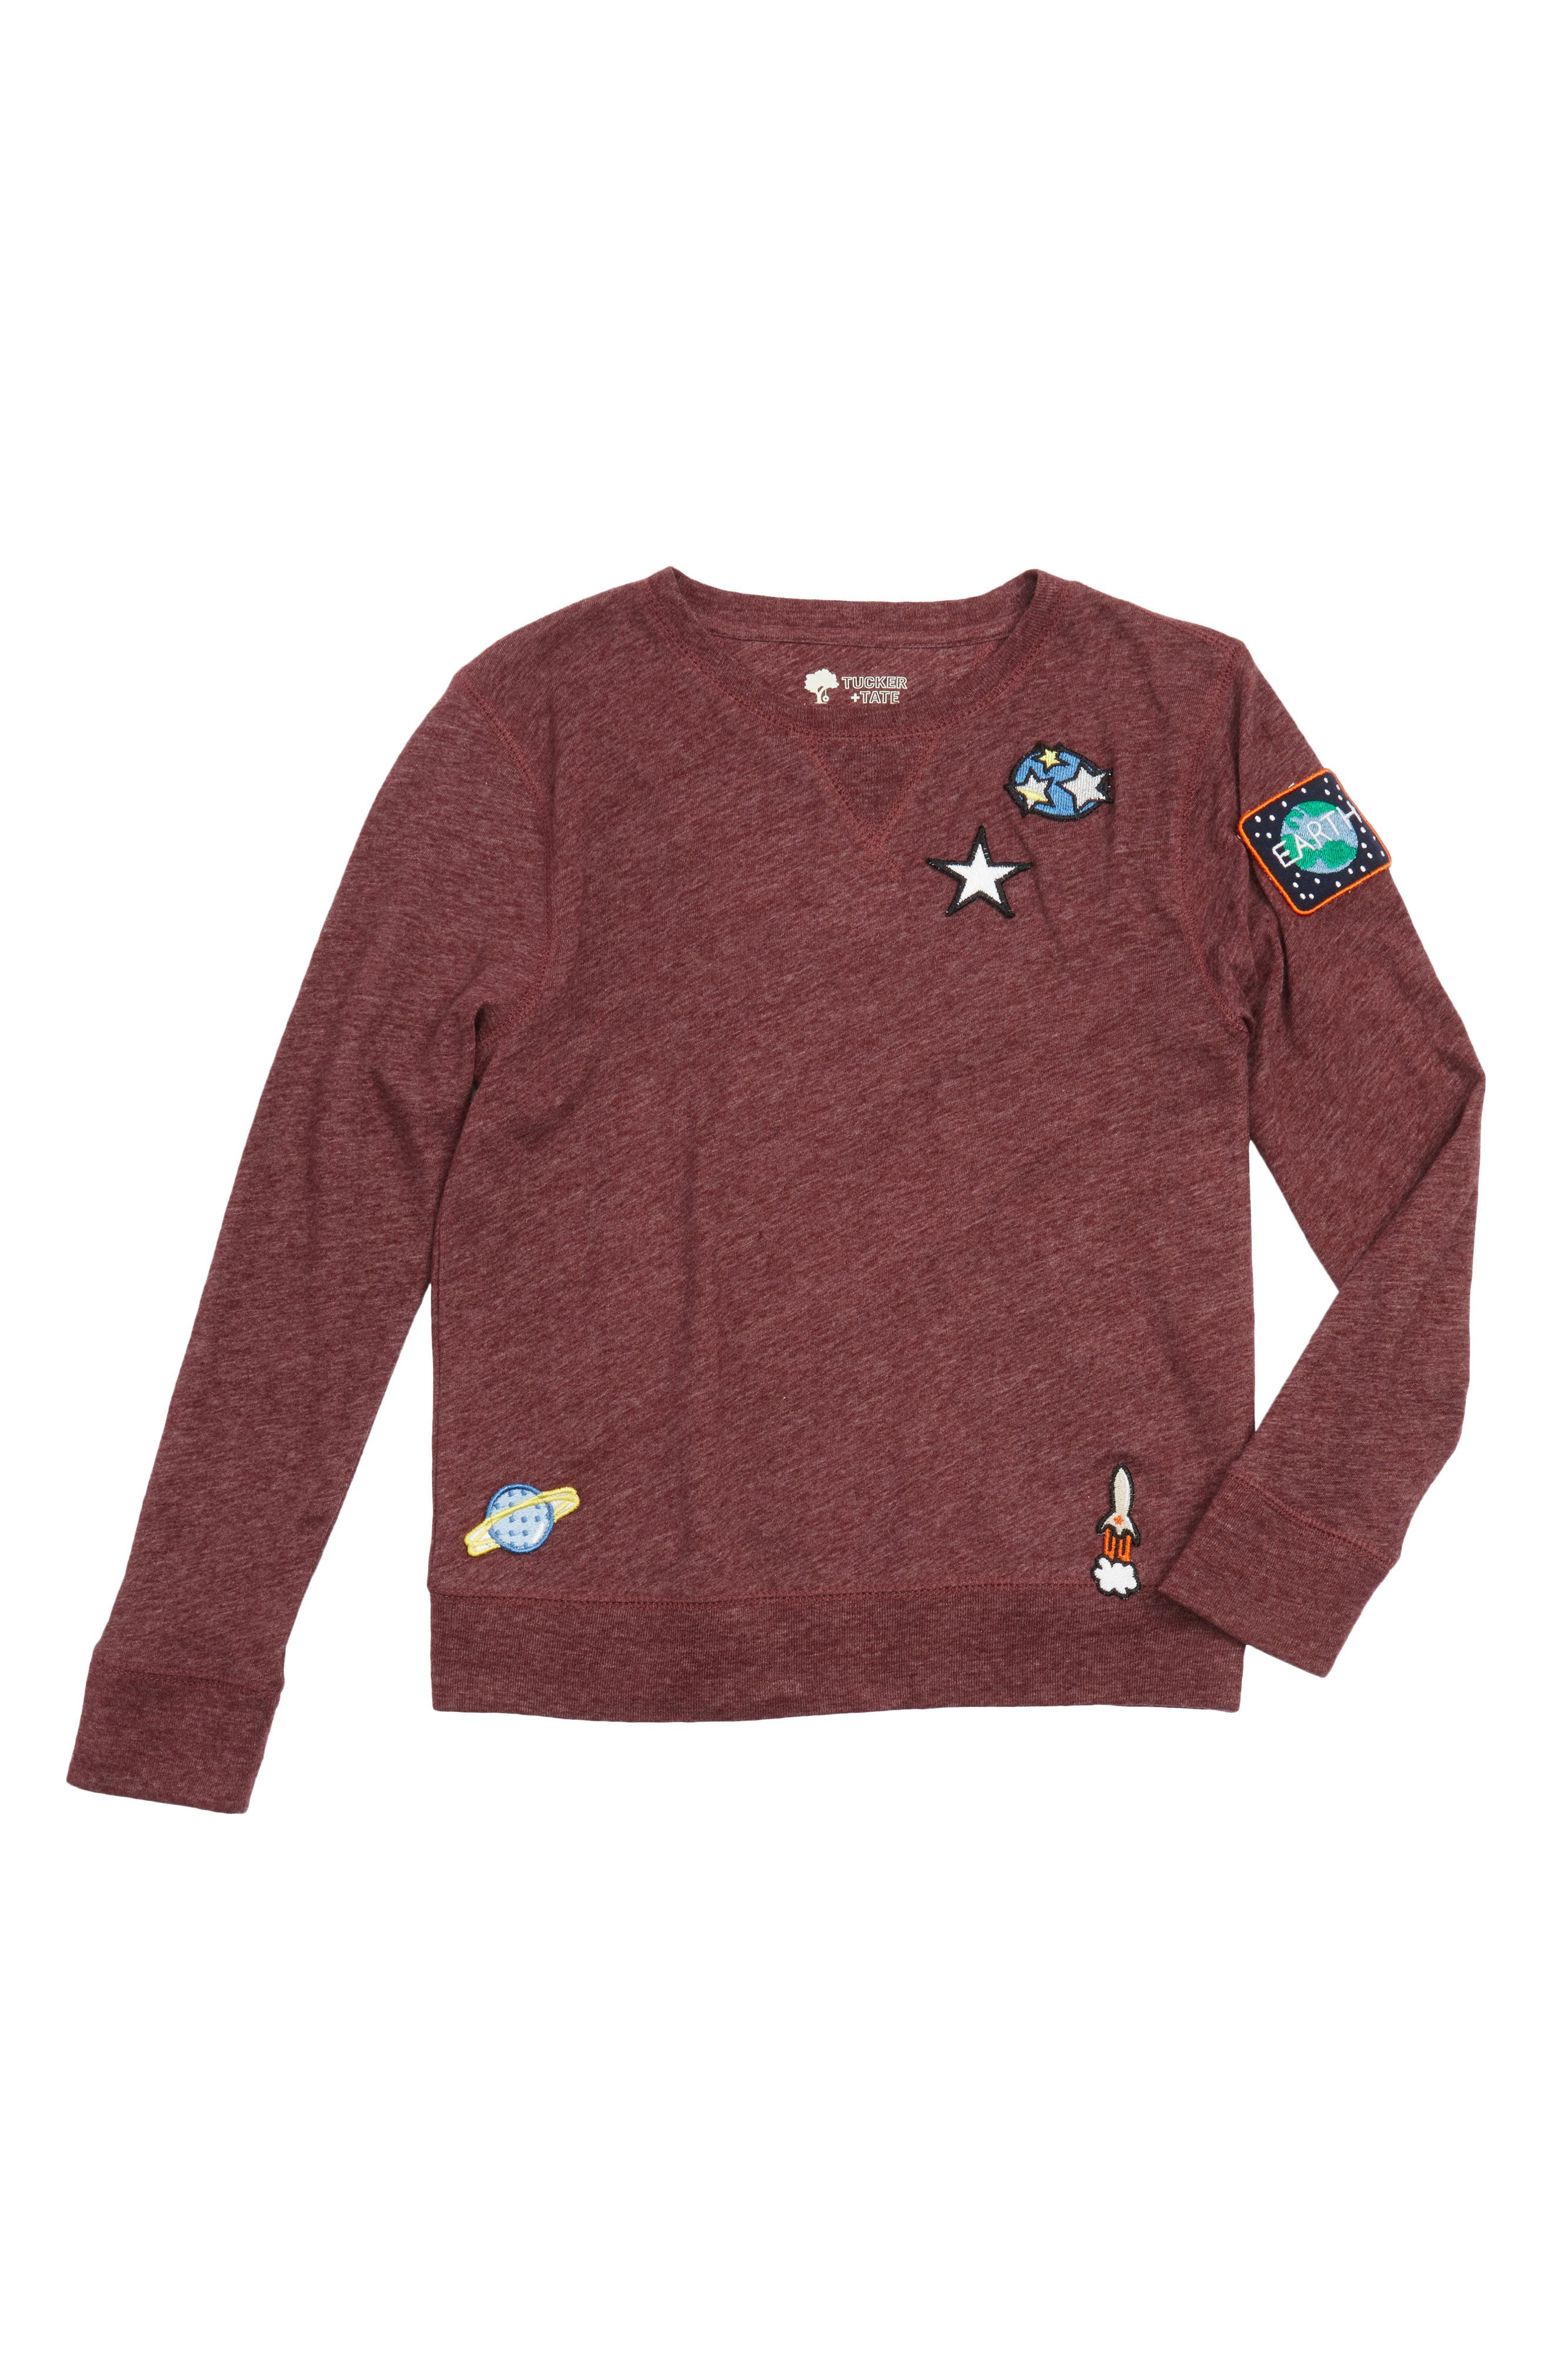 Tucker + Tate Outer Space Appliquéd Long Sleeve T-Shirt (Toddler Boys & Little Boys)